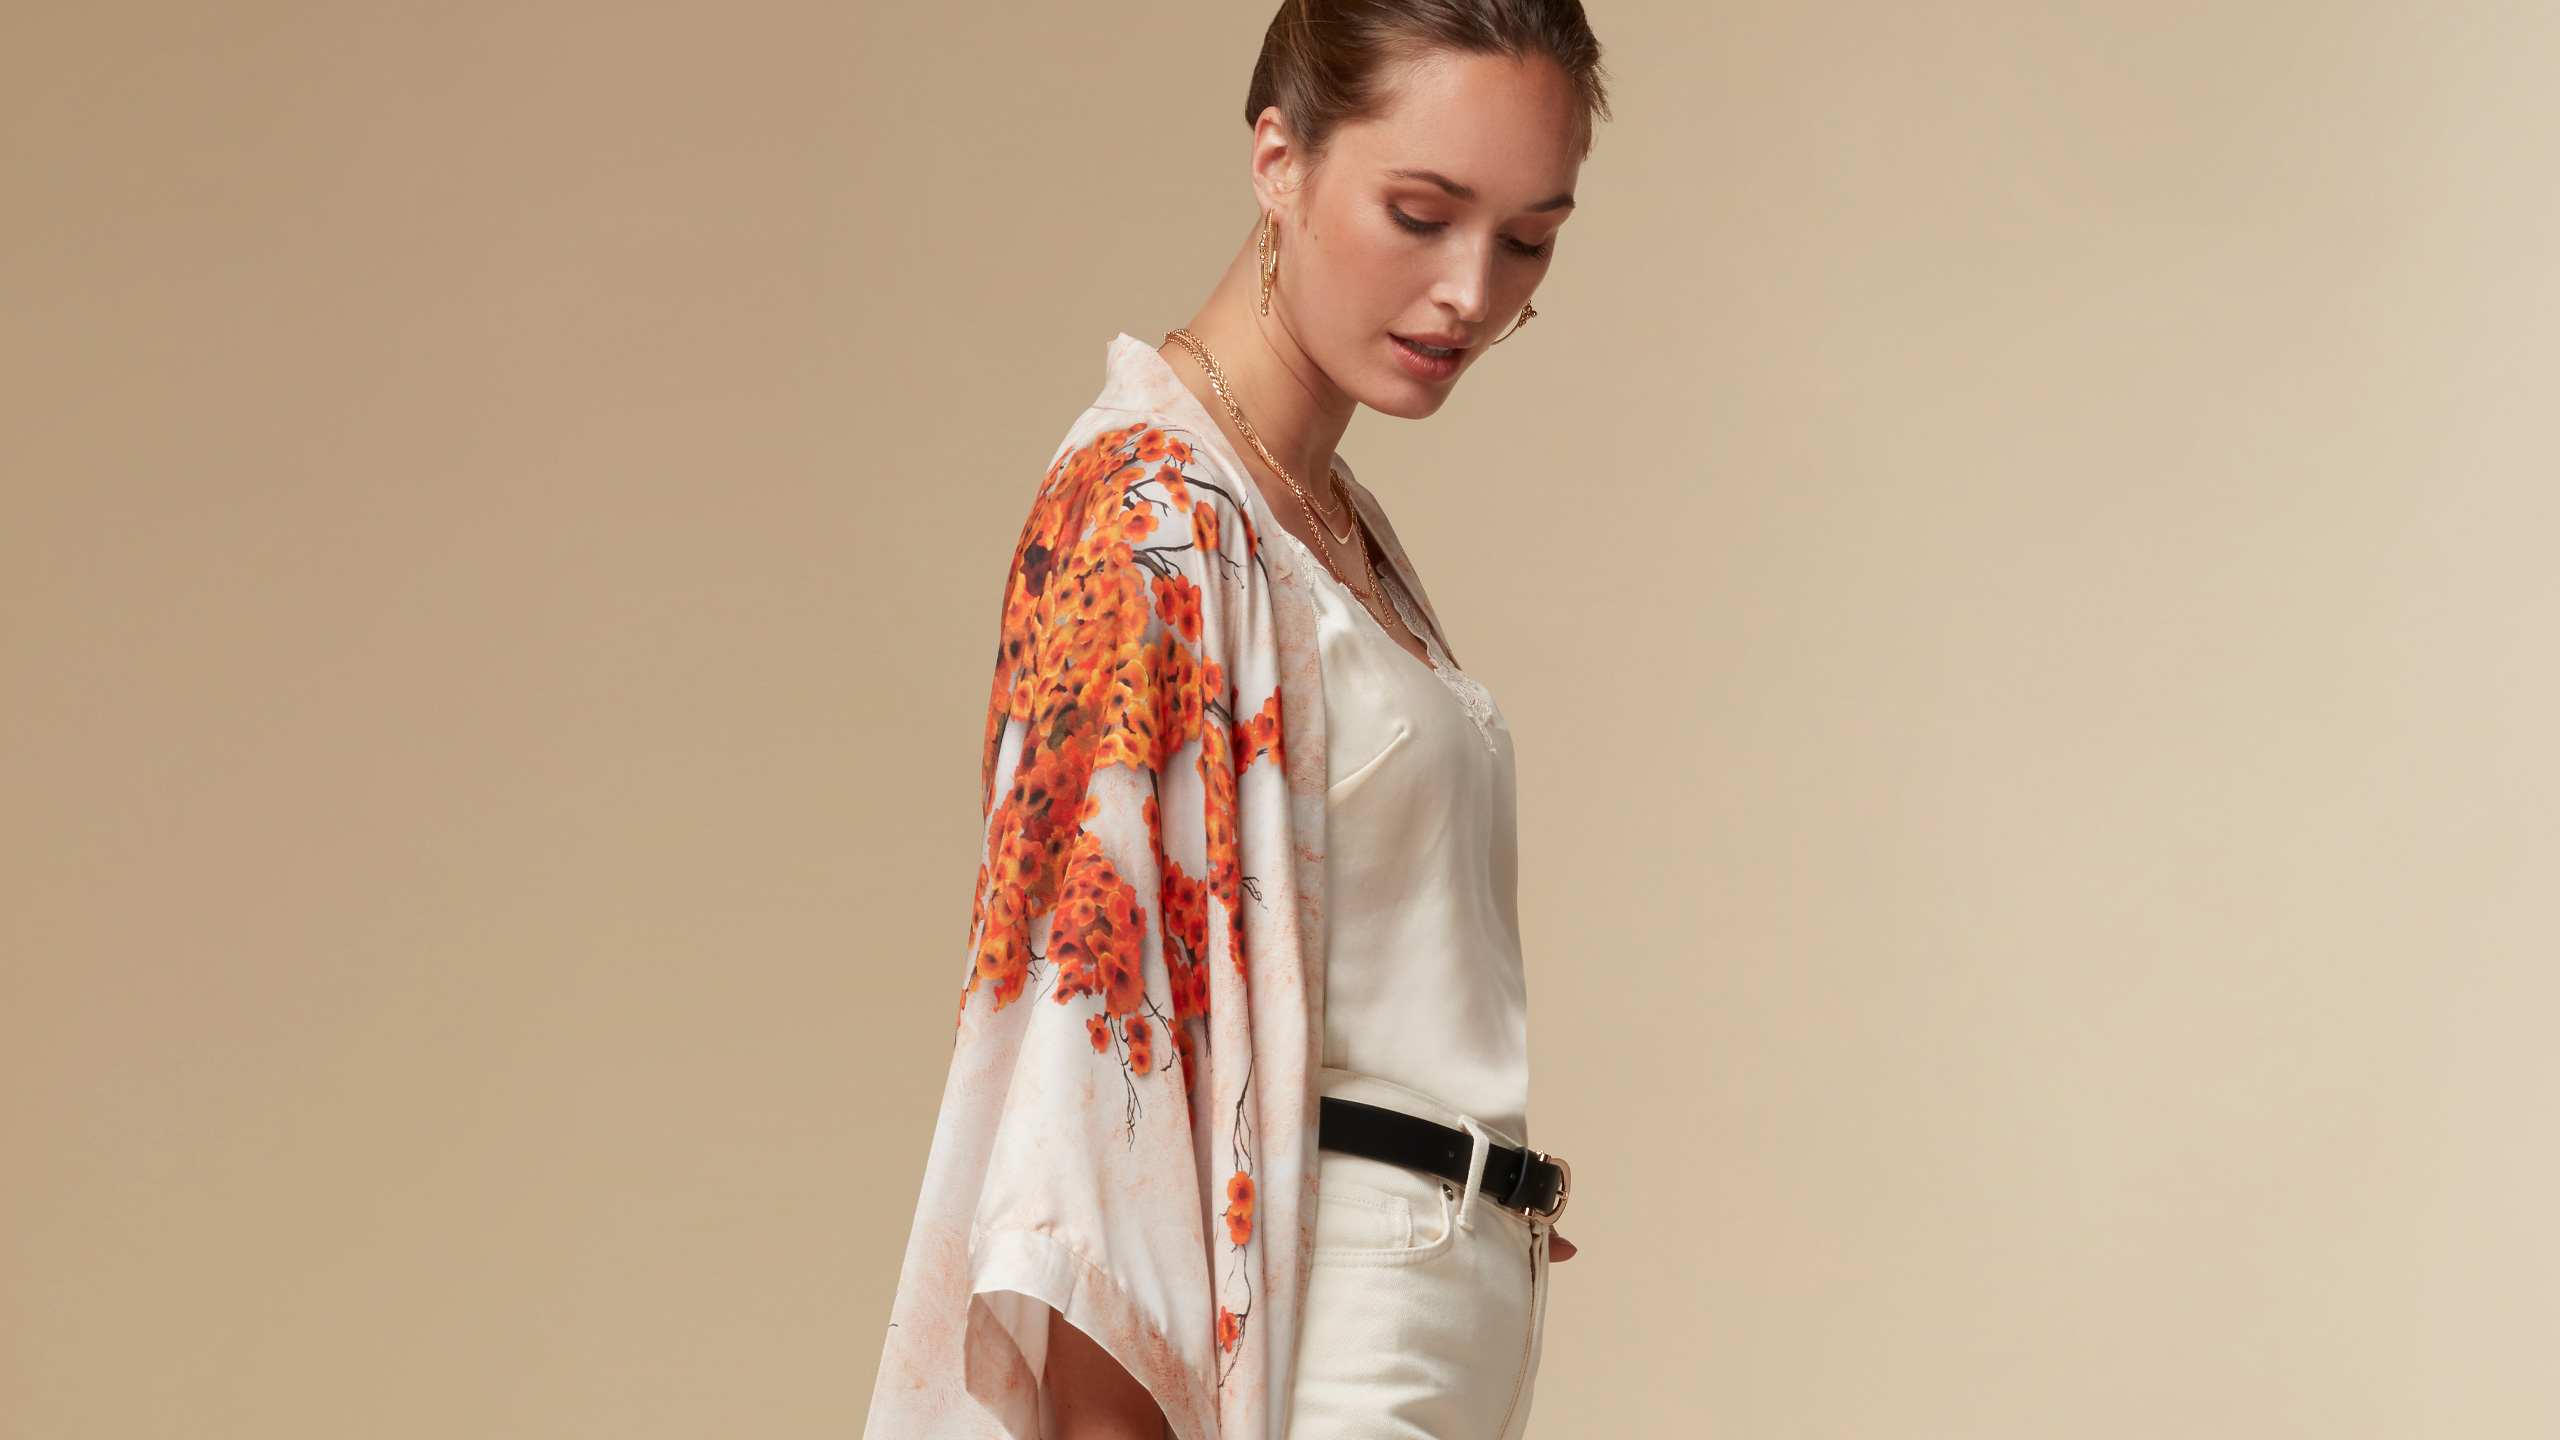 womenswear model wearing a kimono in a beige background